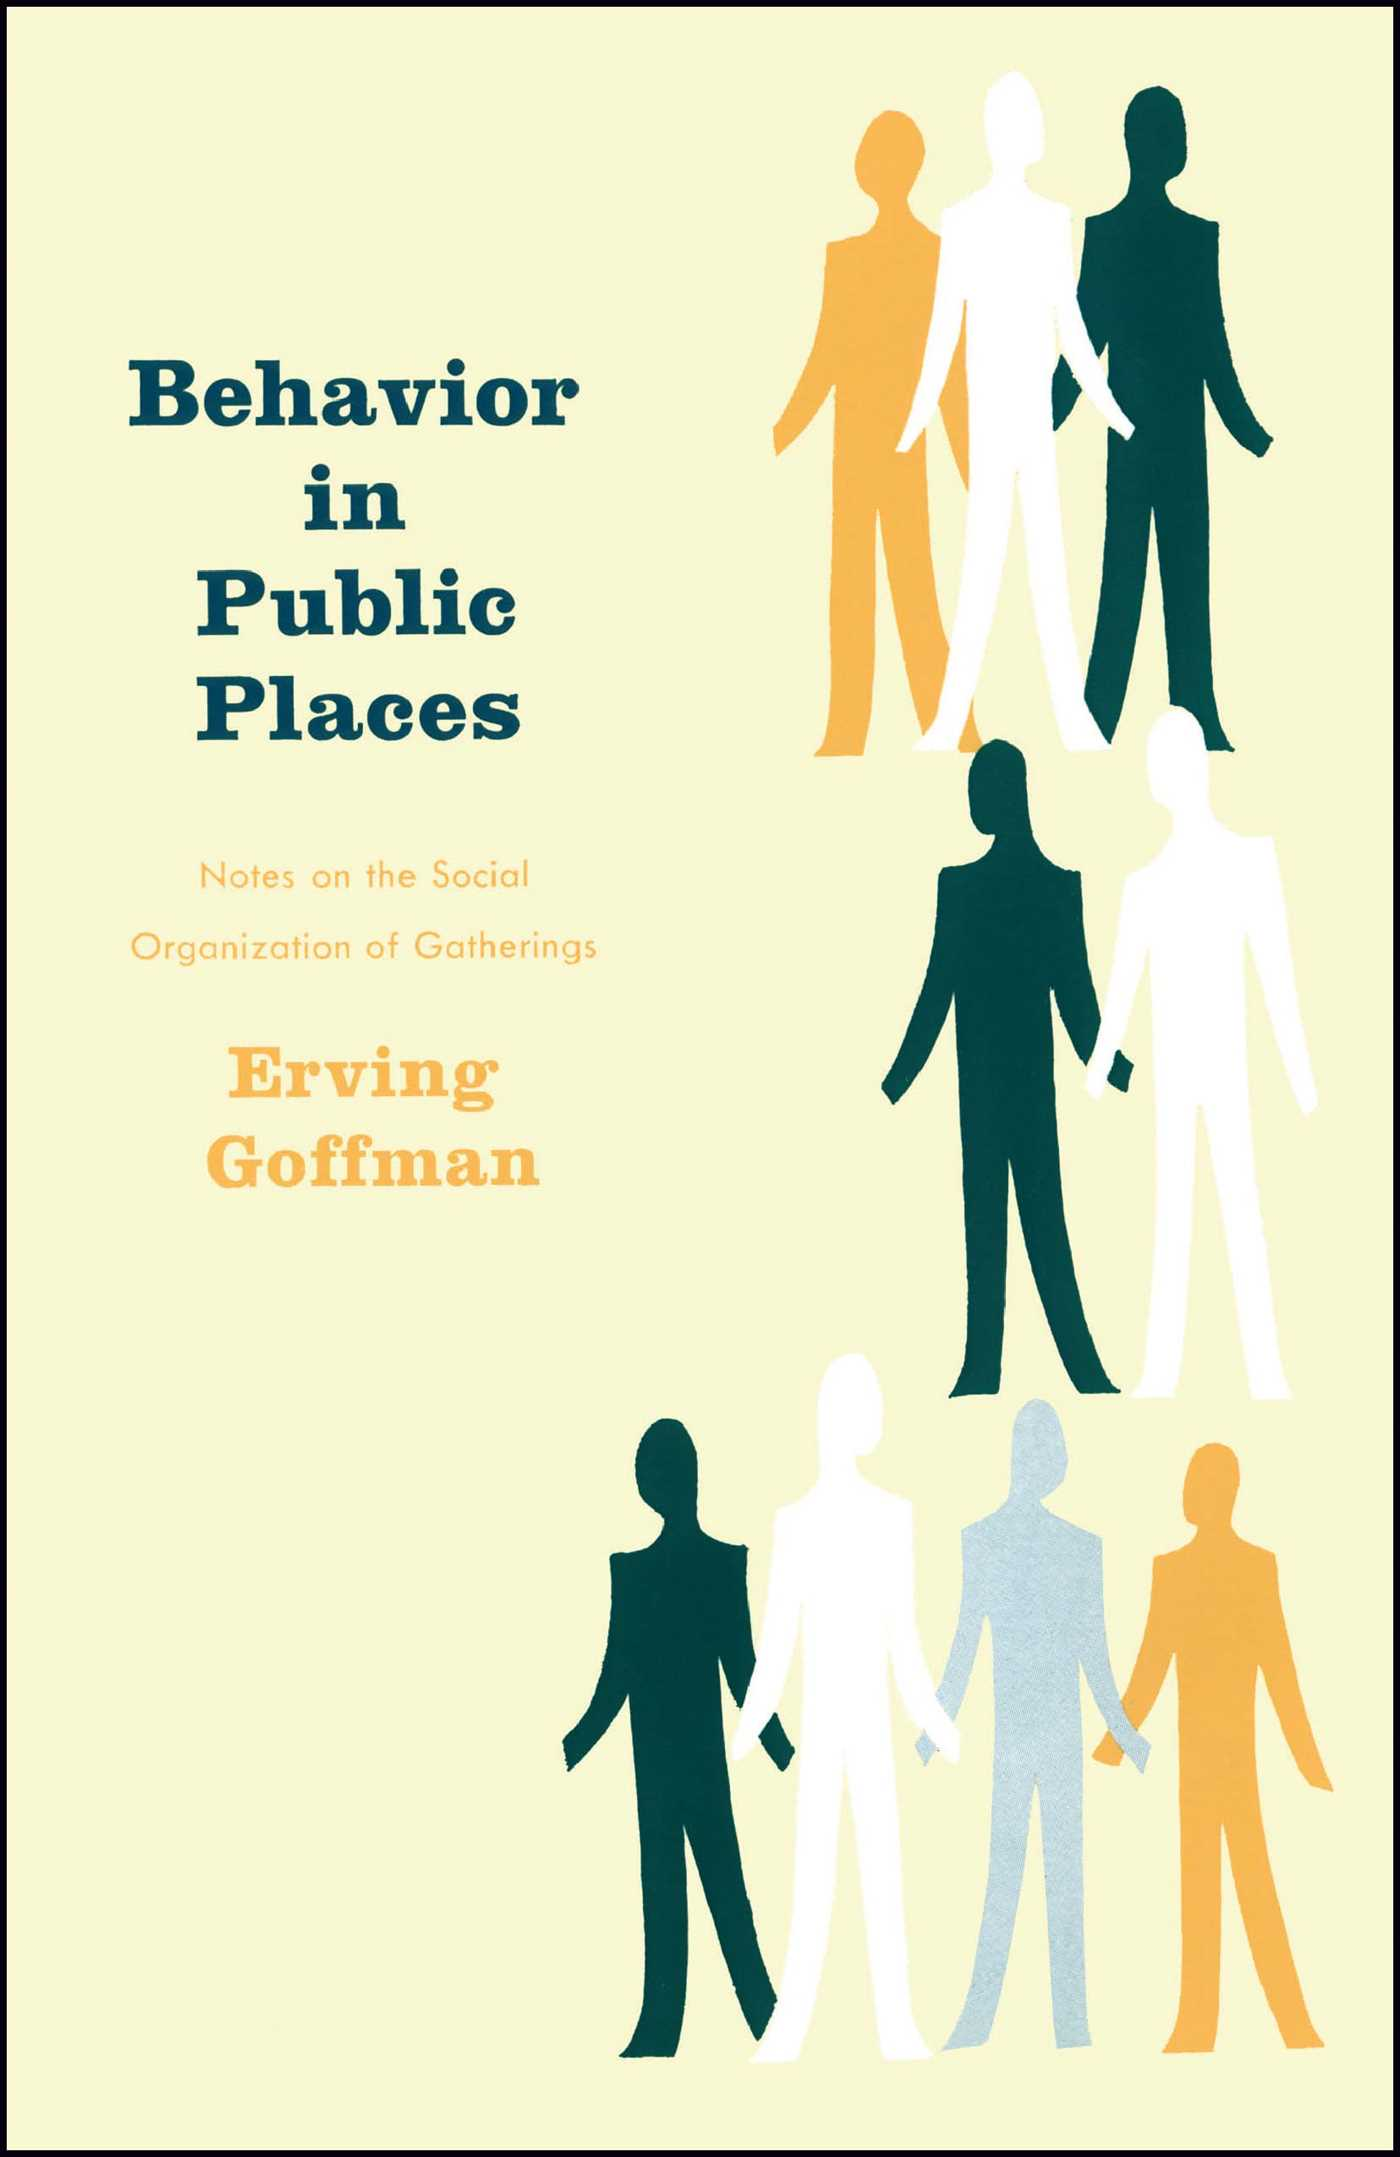 Behavior in Public Places eBook by Erving Goffman | Official ...